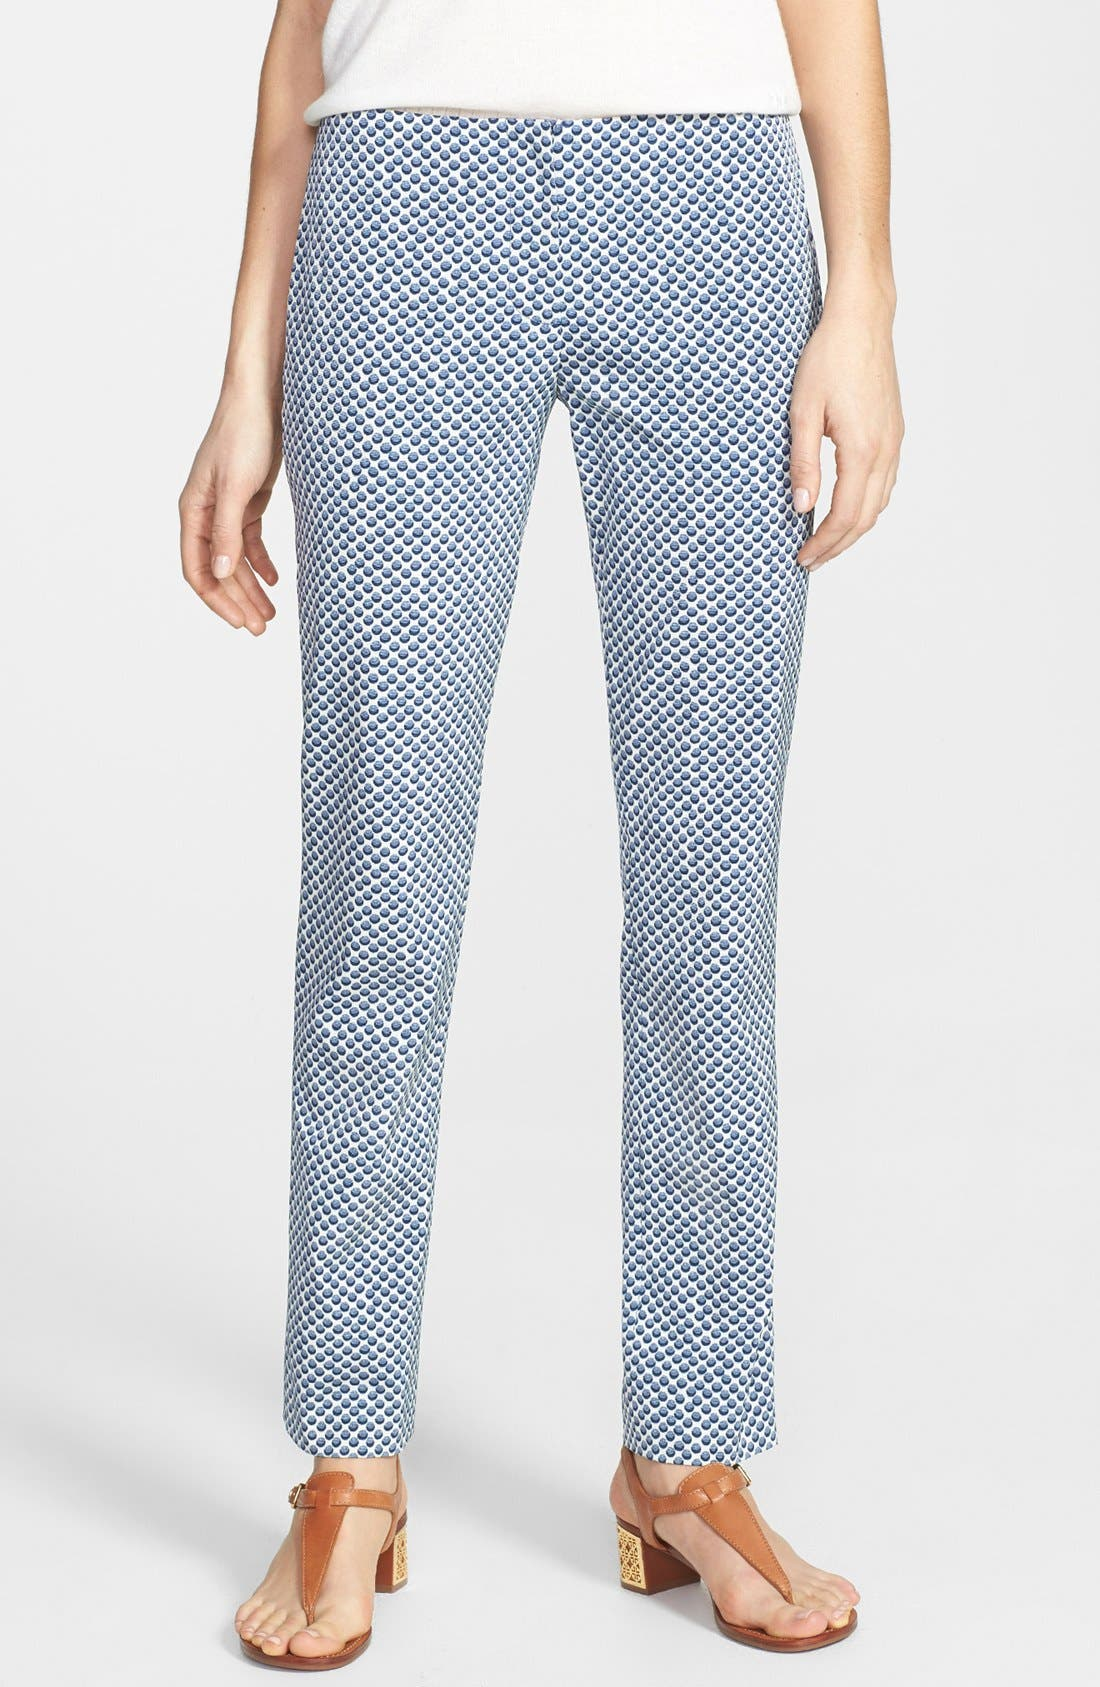 Alternate Image 1 Selected - Tory Burch 'Ruth' Dot Jacquard Ankle Pants